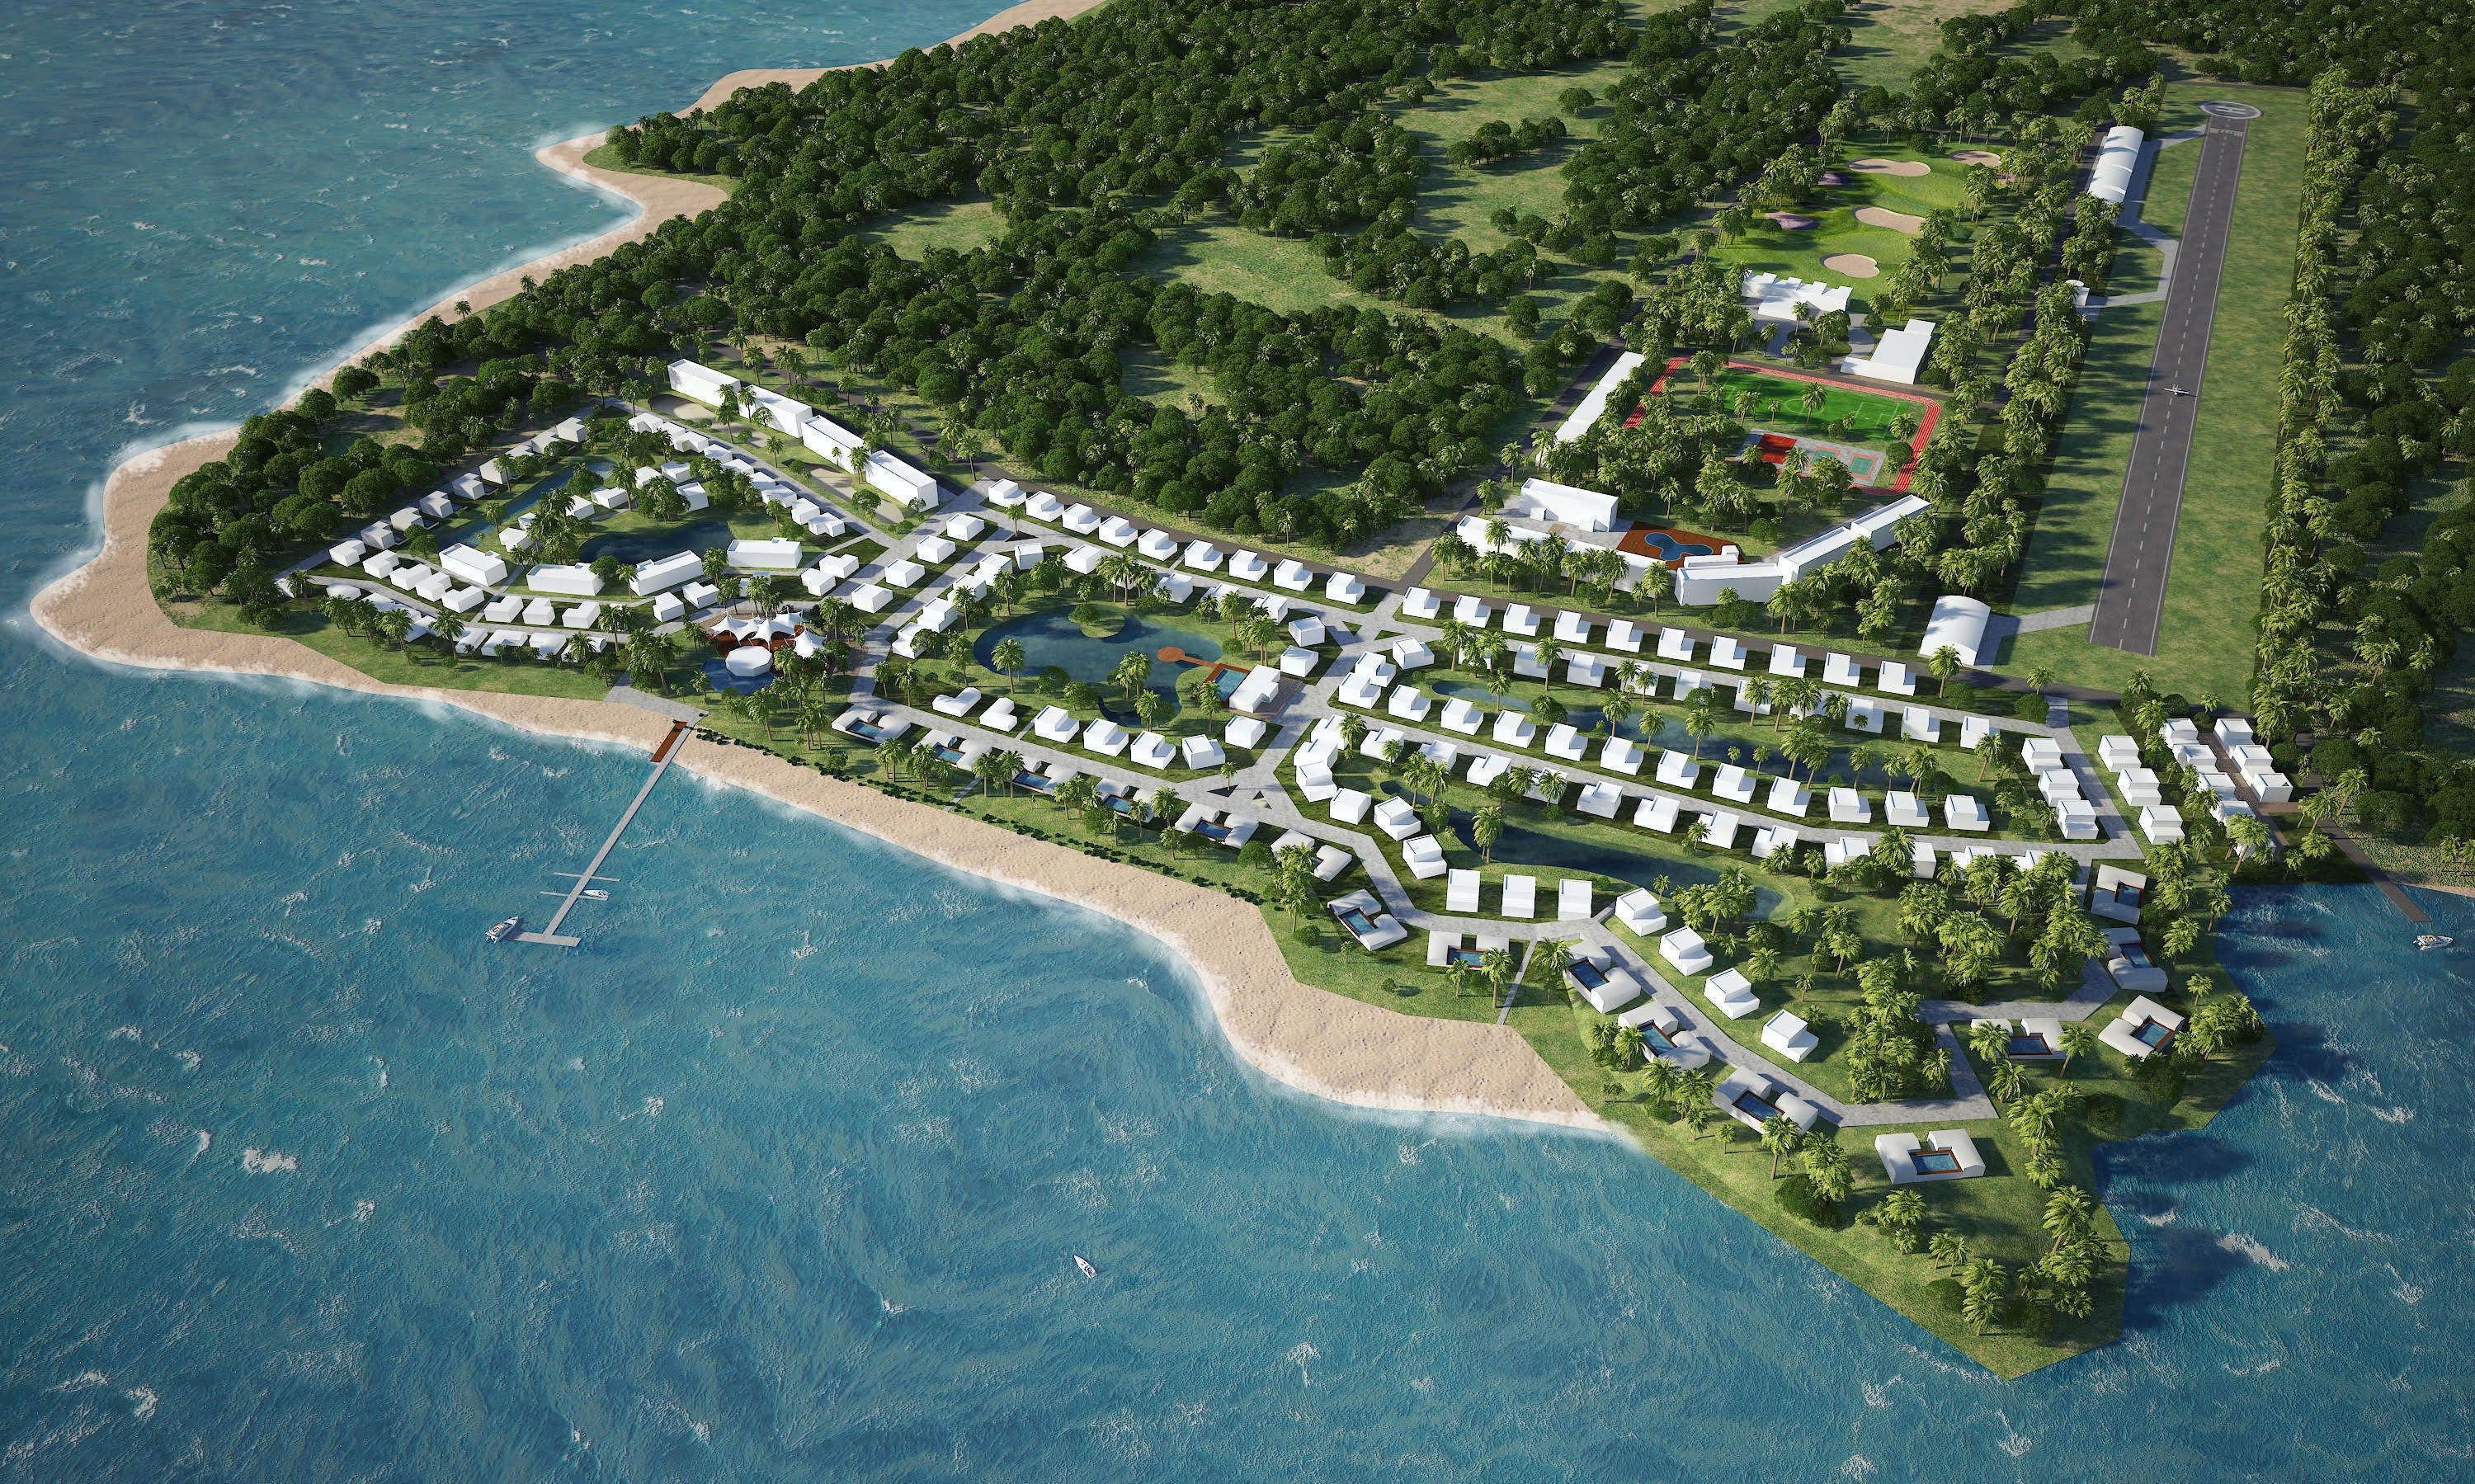 SRV's masterplan of a prime beach lot in Koh Mak, Thailand